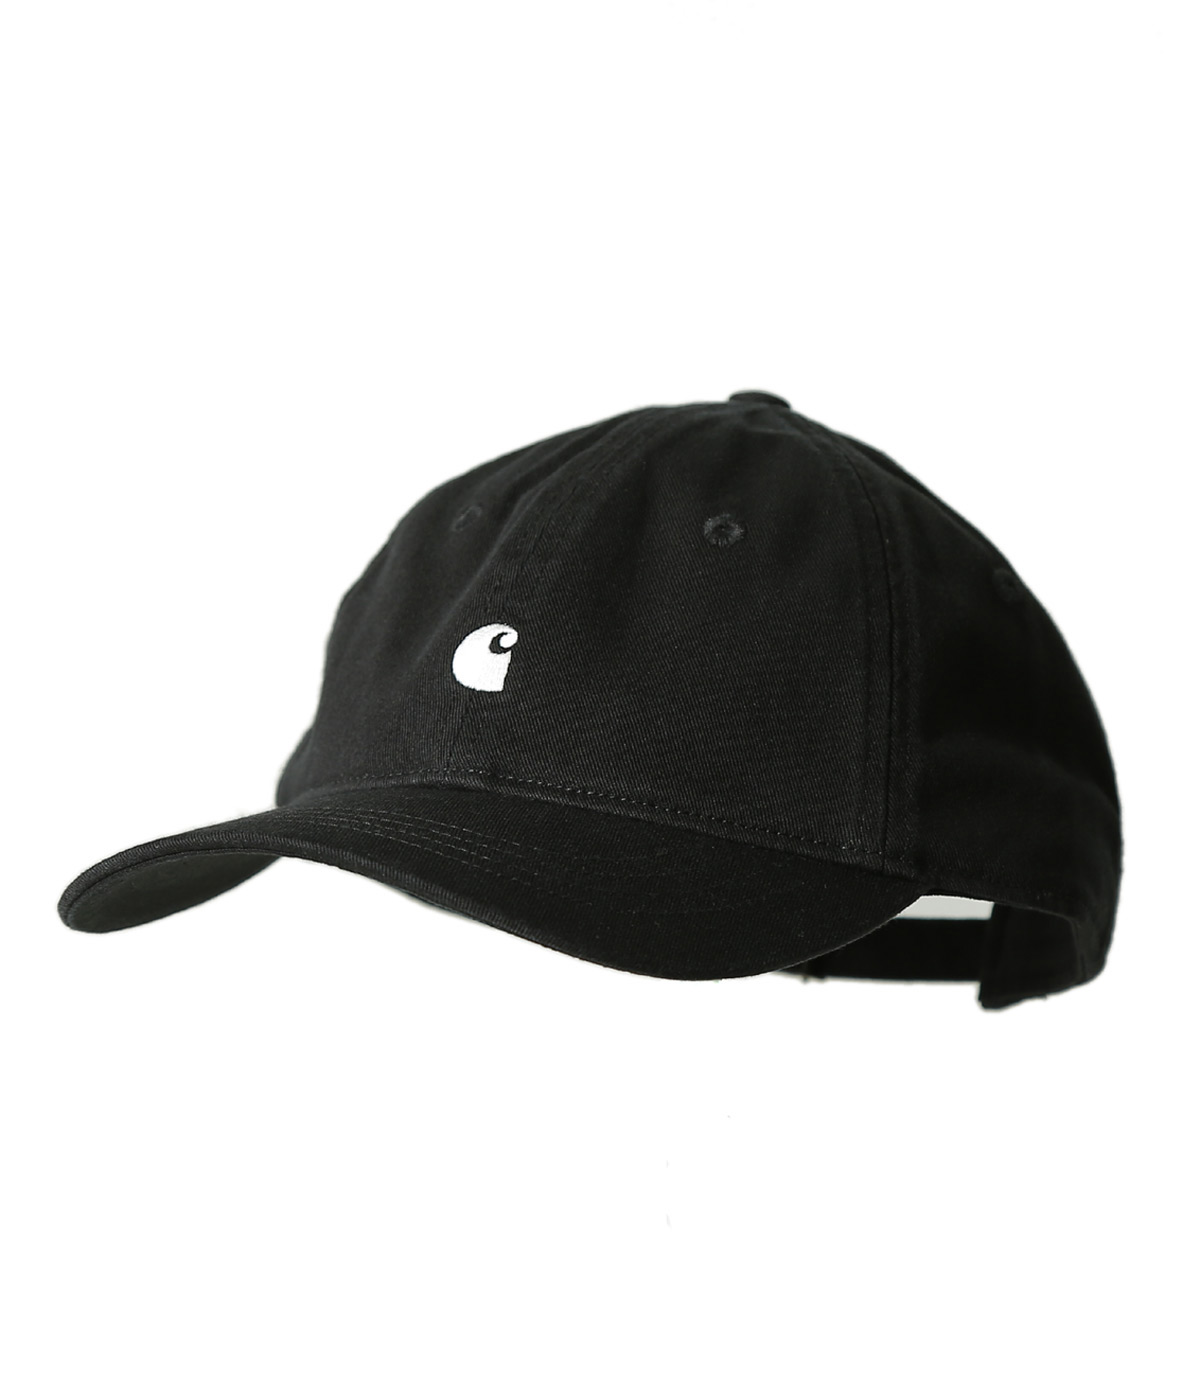 MADISON LOGO CAP